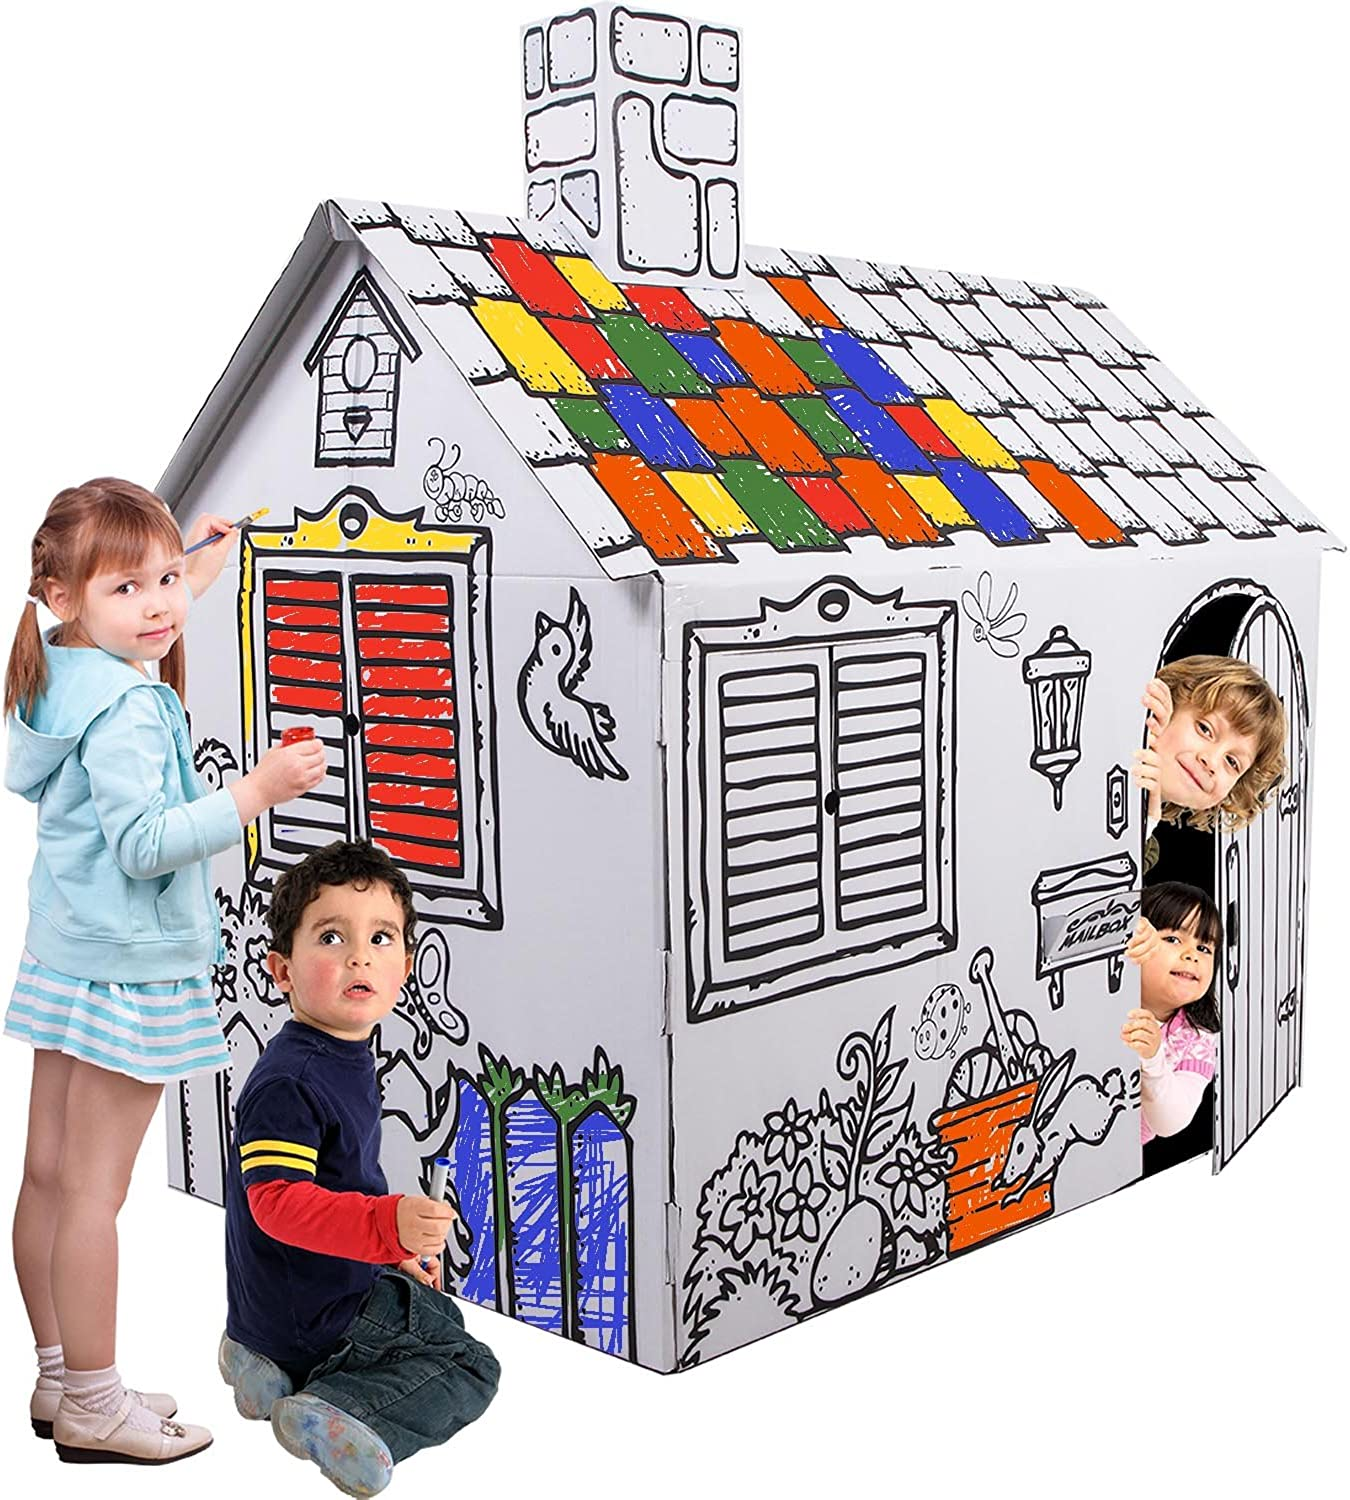 Kucuk Mimar KartonKinder XLarge Cardboard Playhouse, Build, Colour and Play